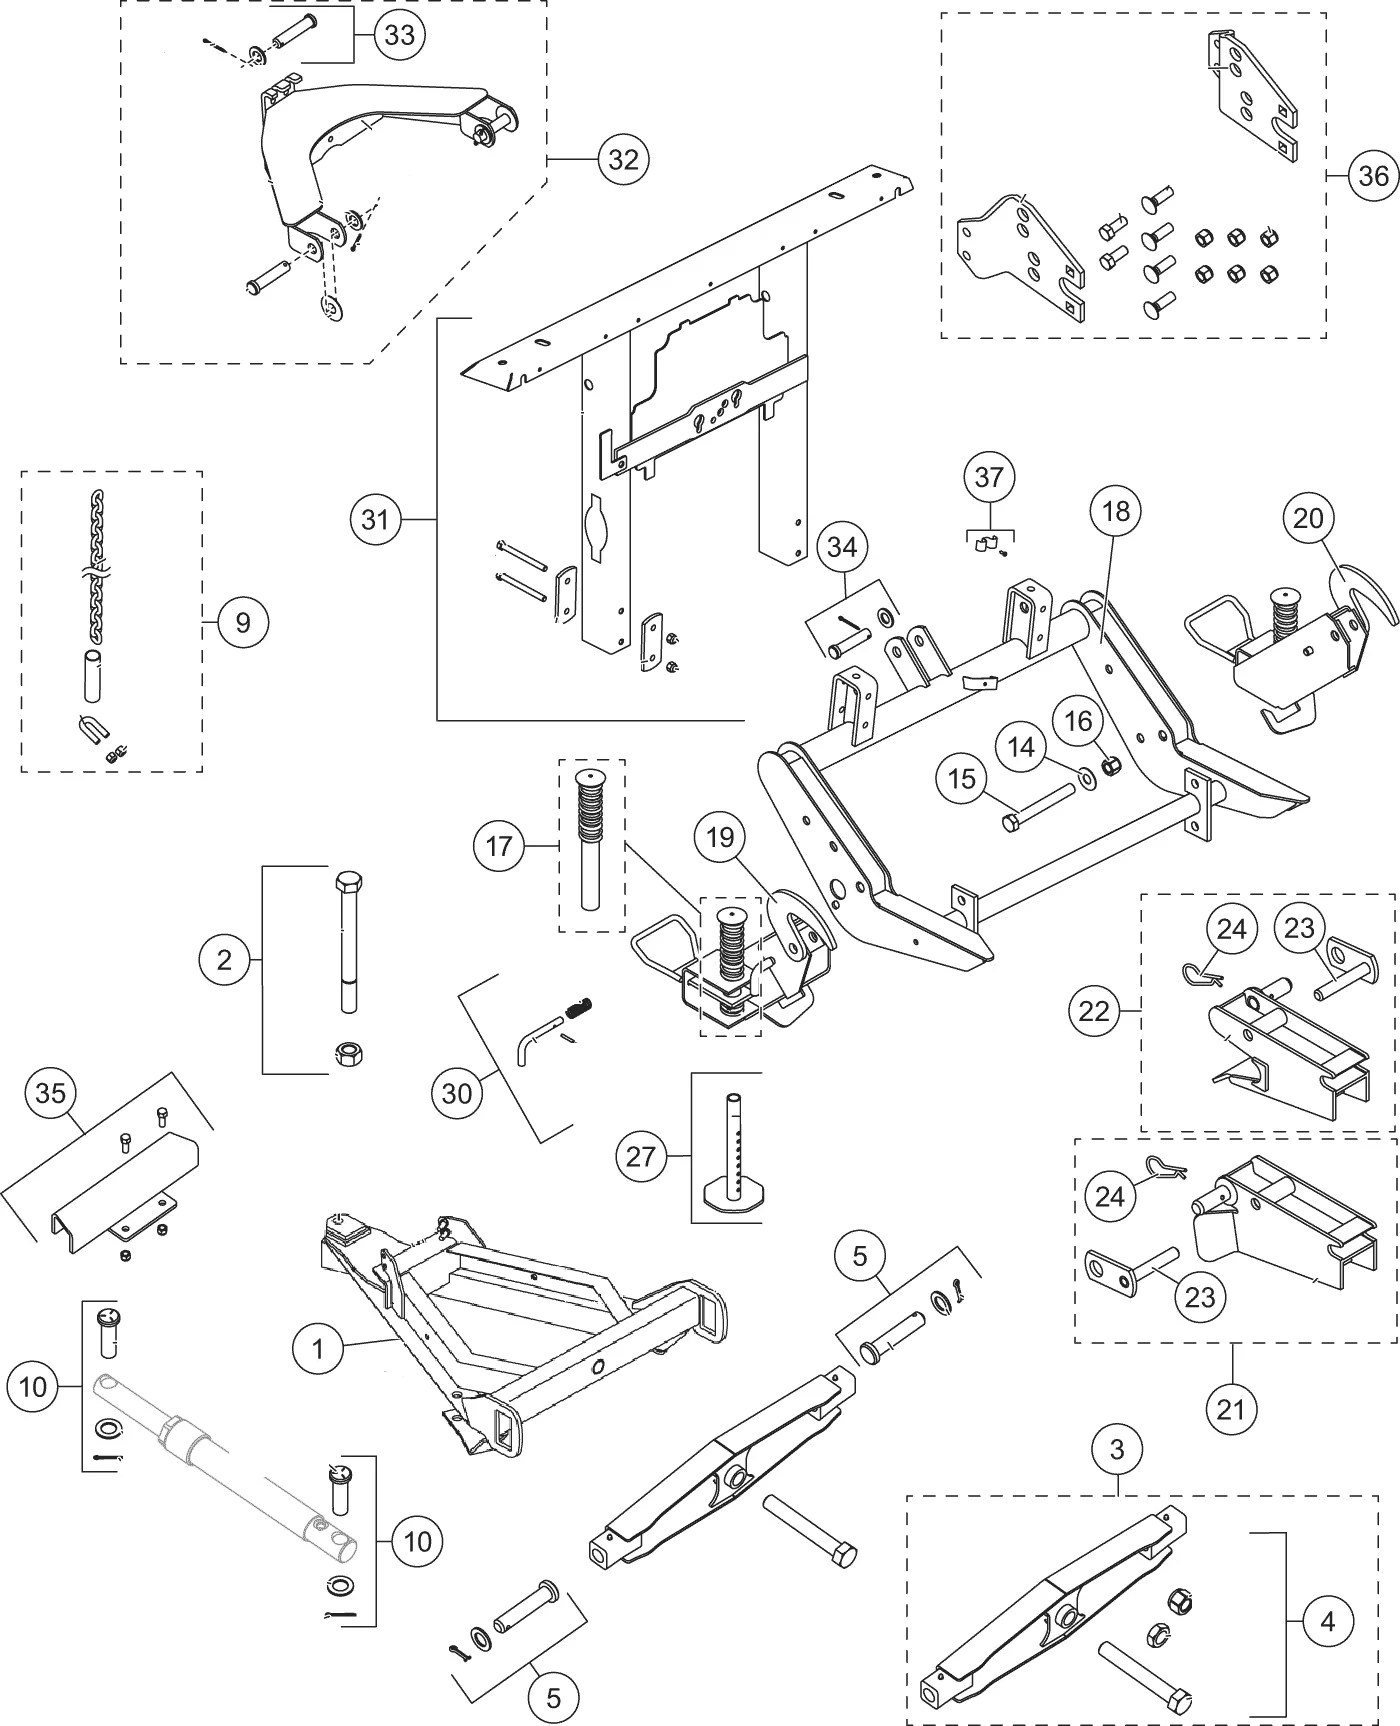 western snow plow parts diagram single line for house wiring ultramount pro lift frame and a mouse over or tap to zoom